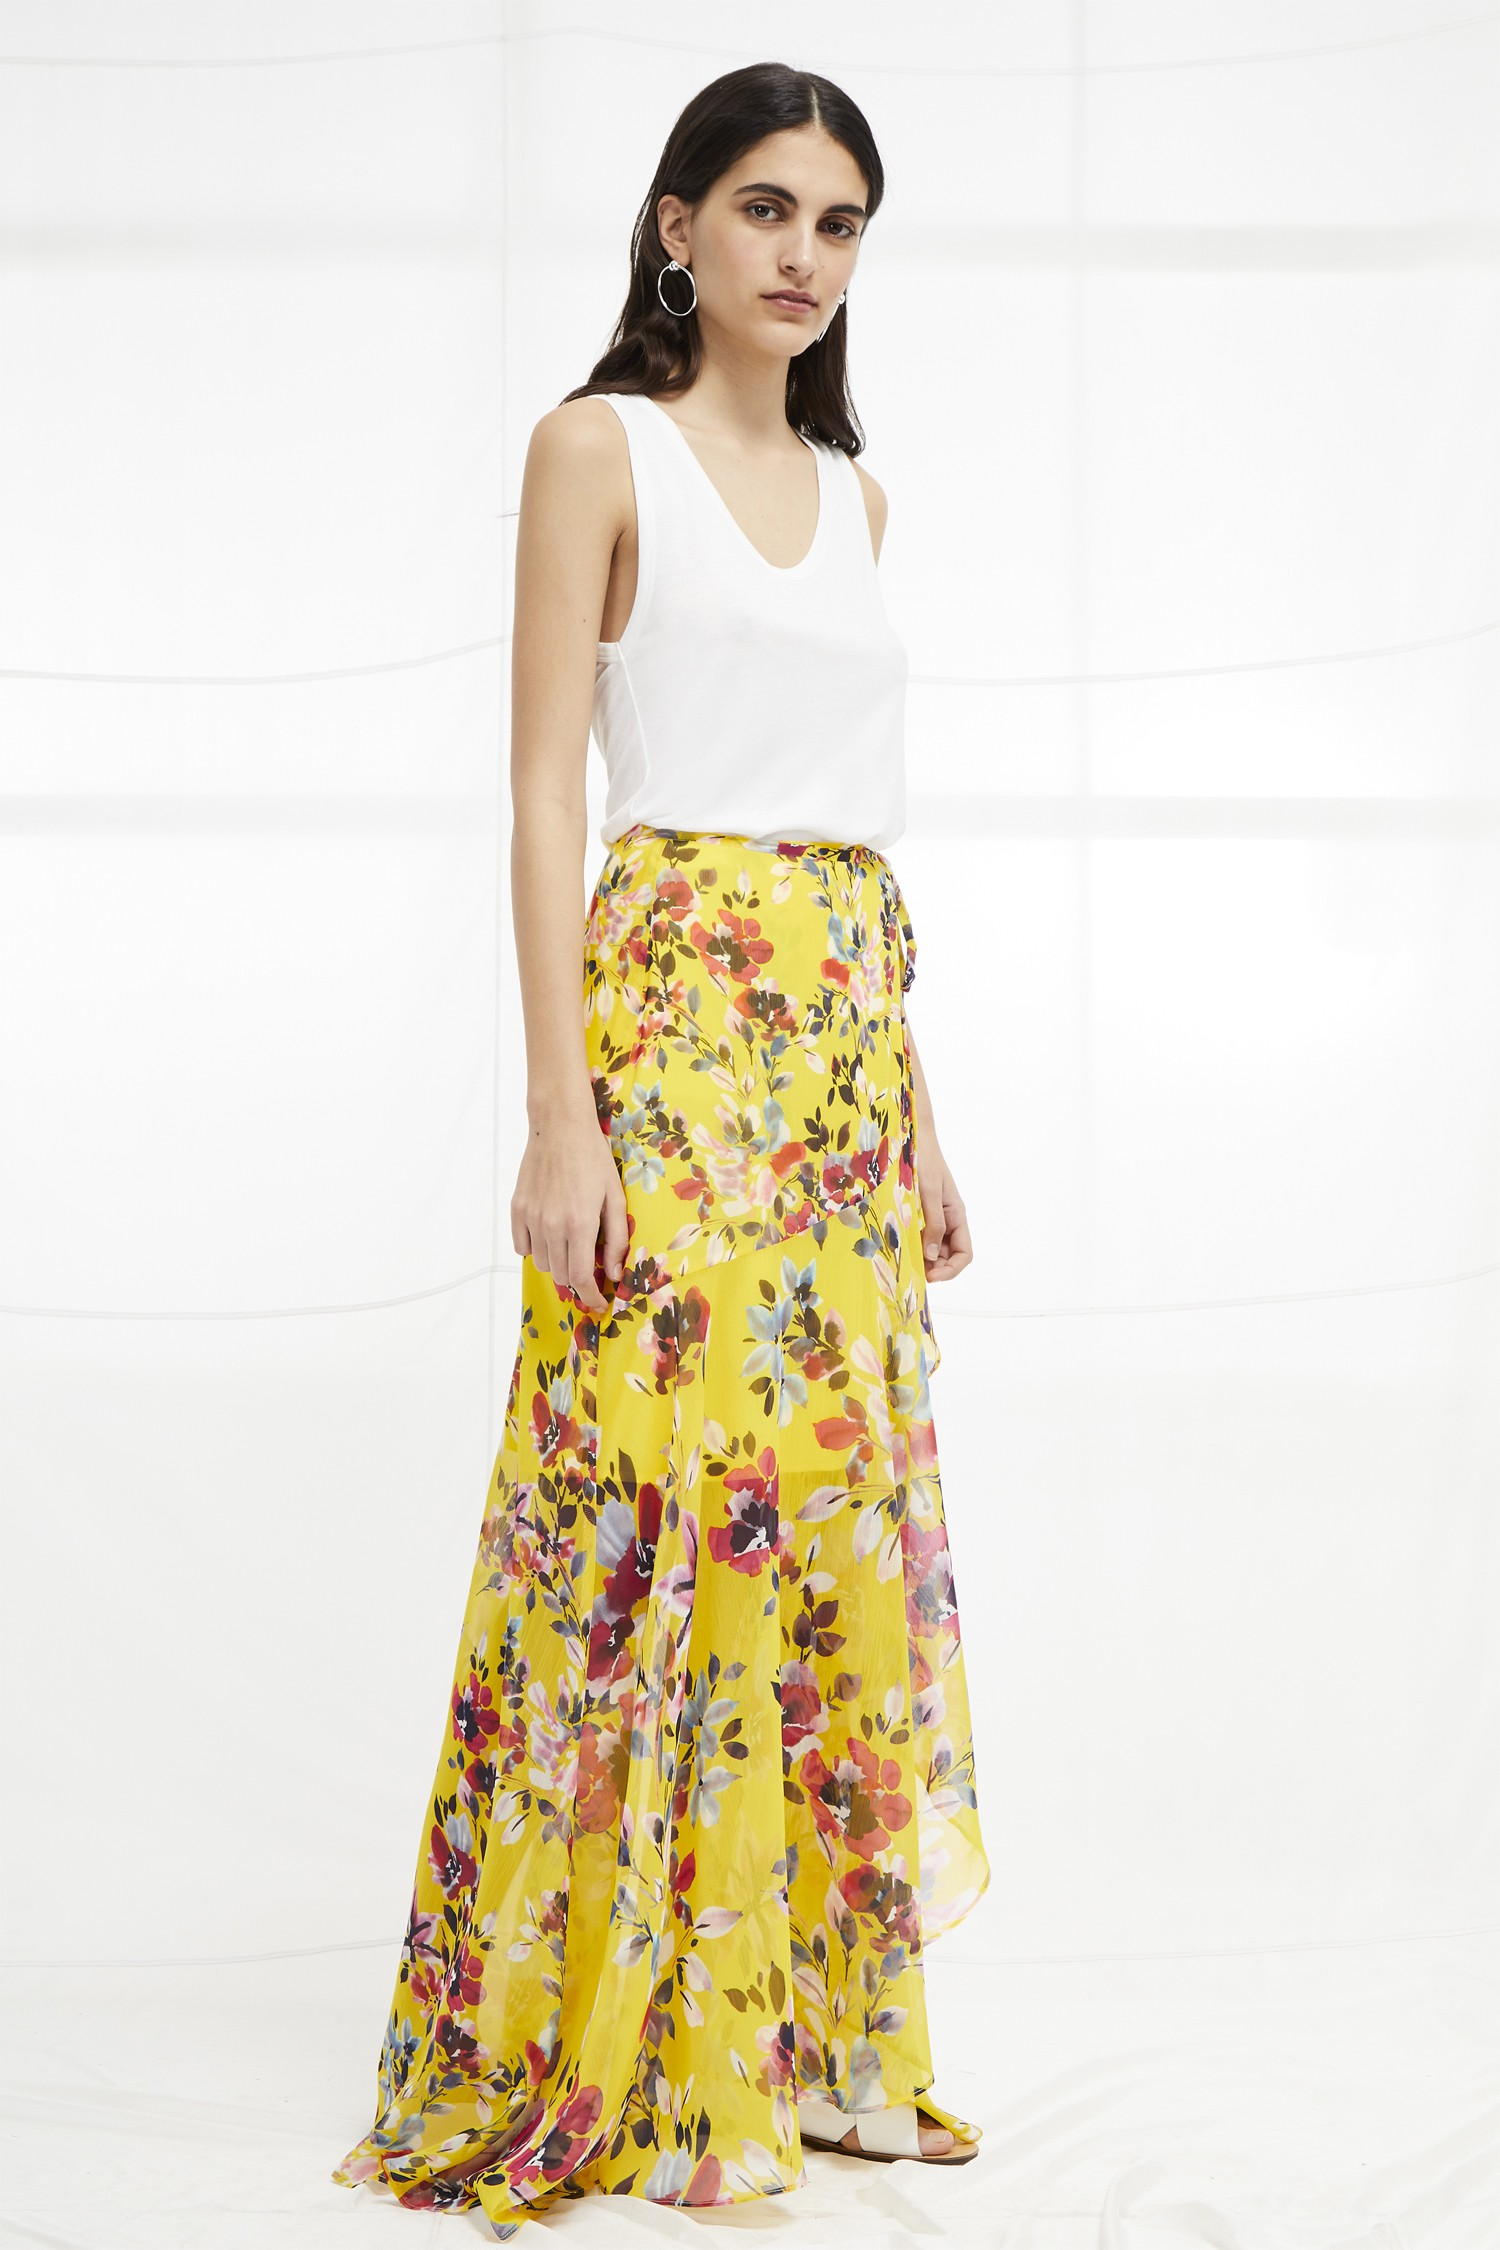 39bc7cd815f French Connection Linosa Crinkle Wrapover Maxi Skirt - 2 Yellow ...